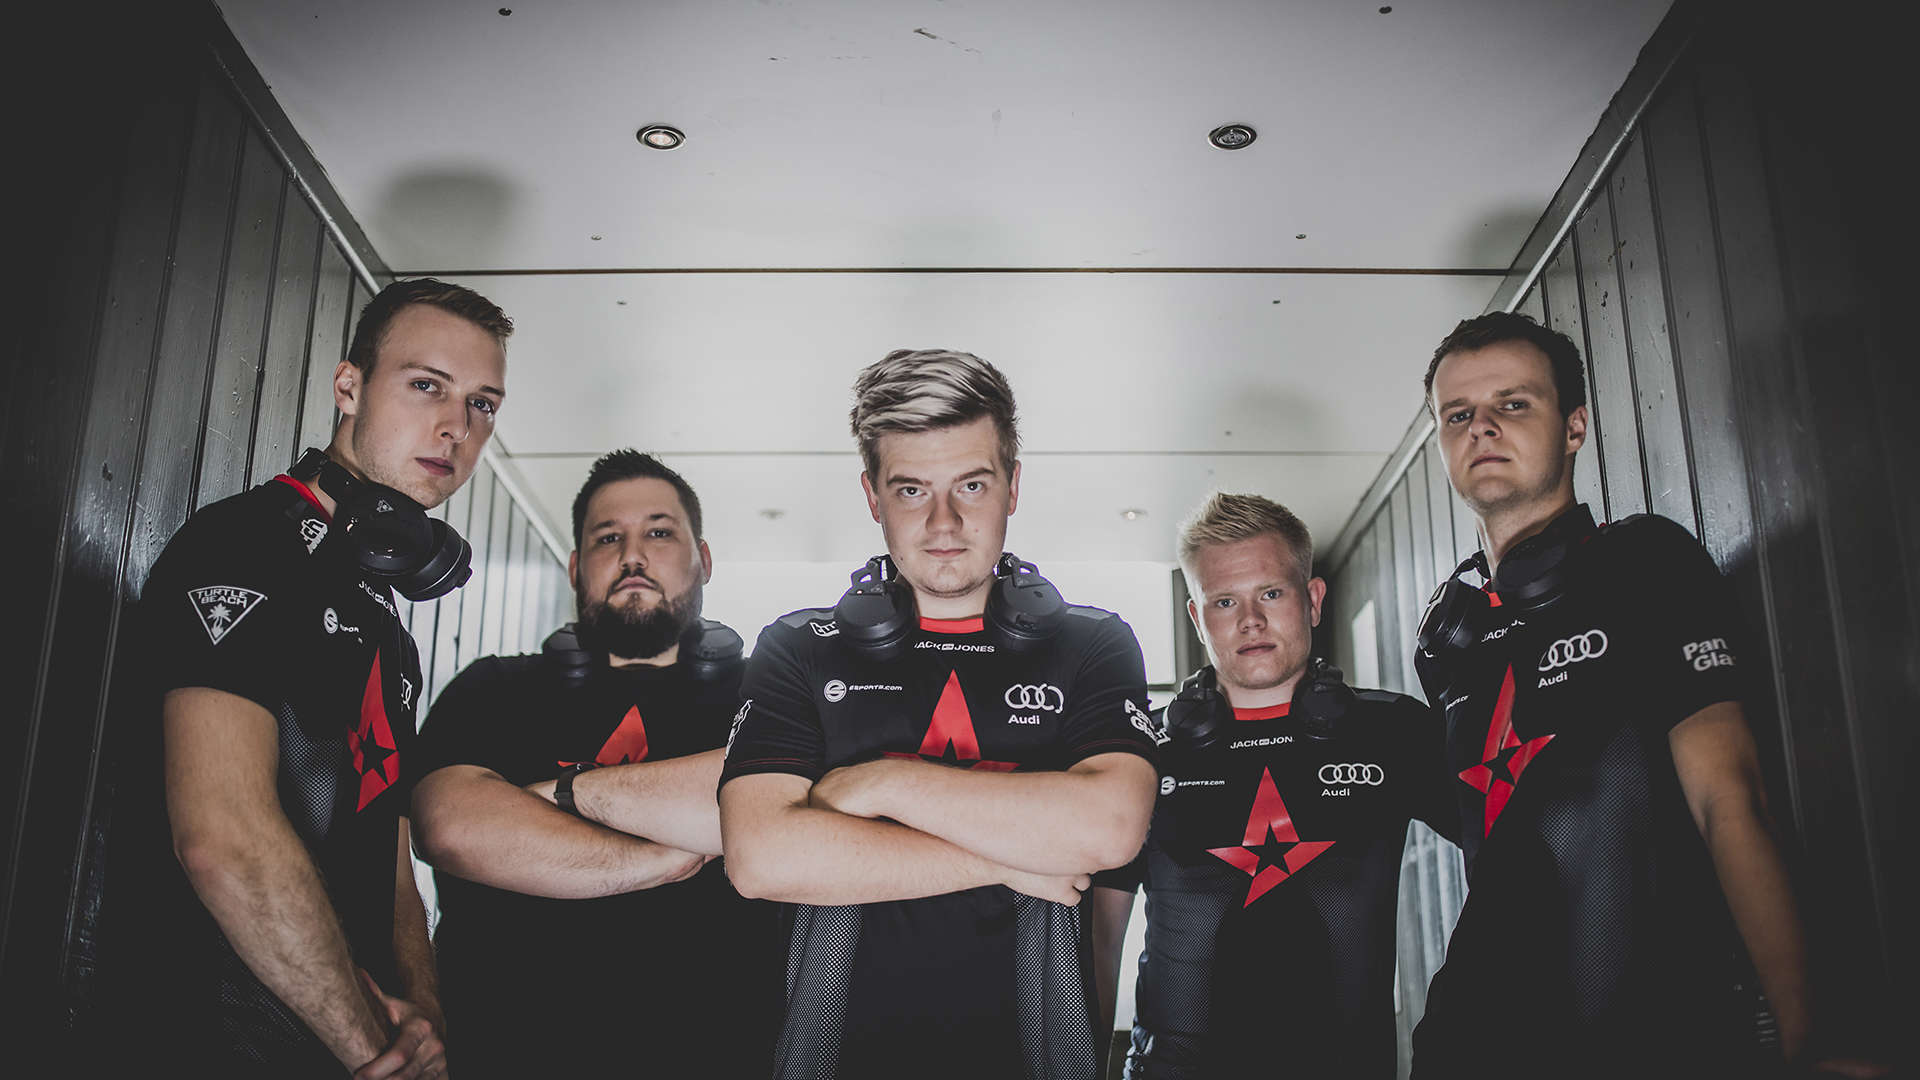 Astralis look back on the year that crowned them kings of CS:GO